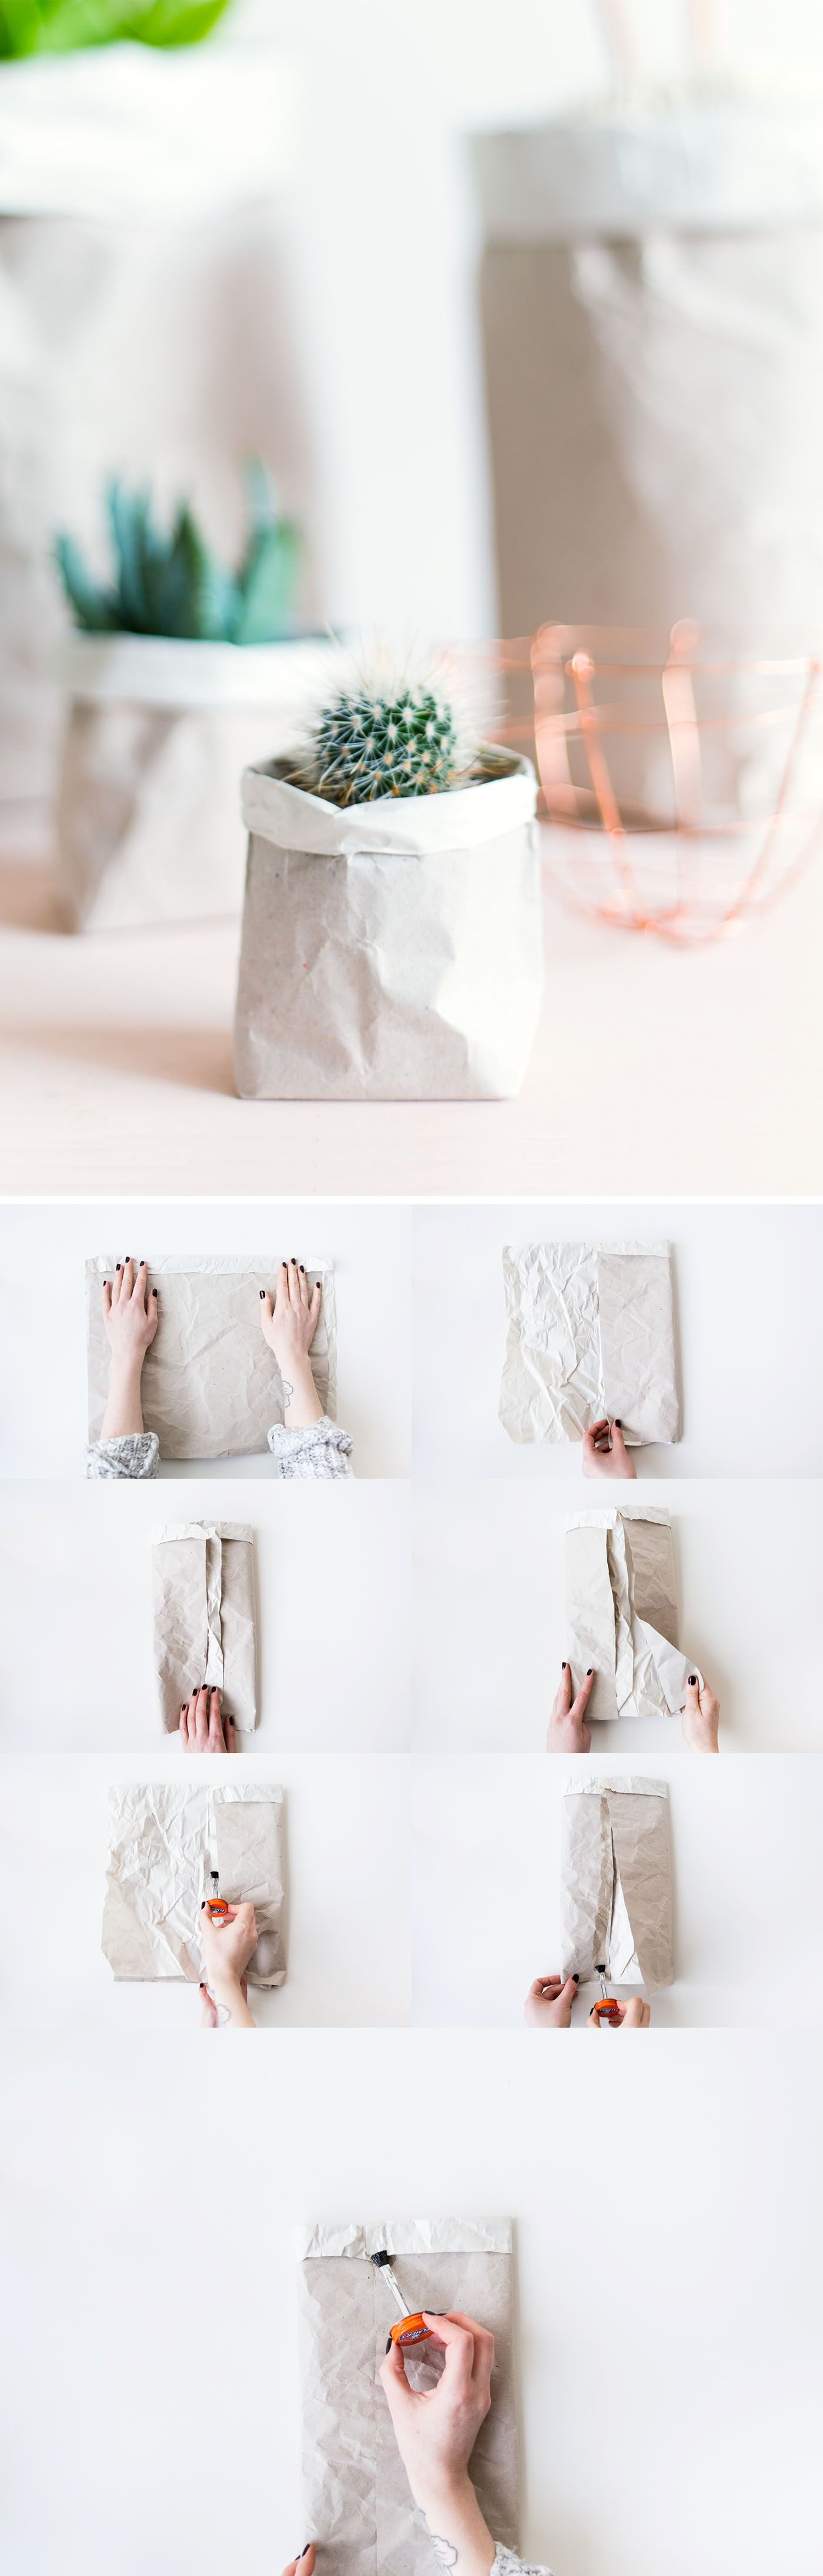 DIY-Packing-Paper-Sack-Planters-@fallfordiy